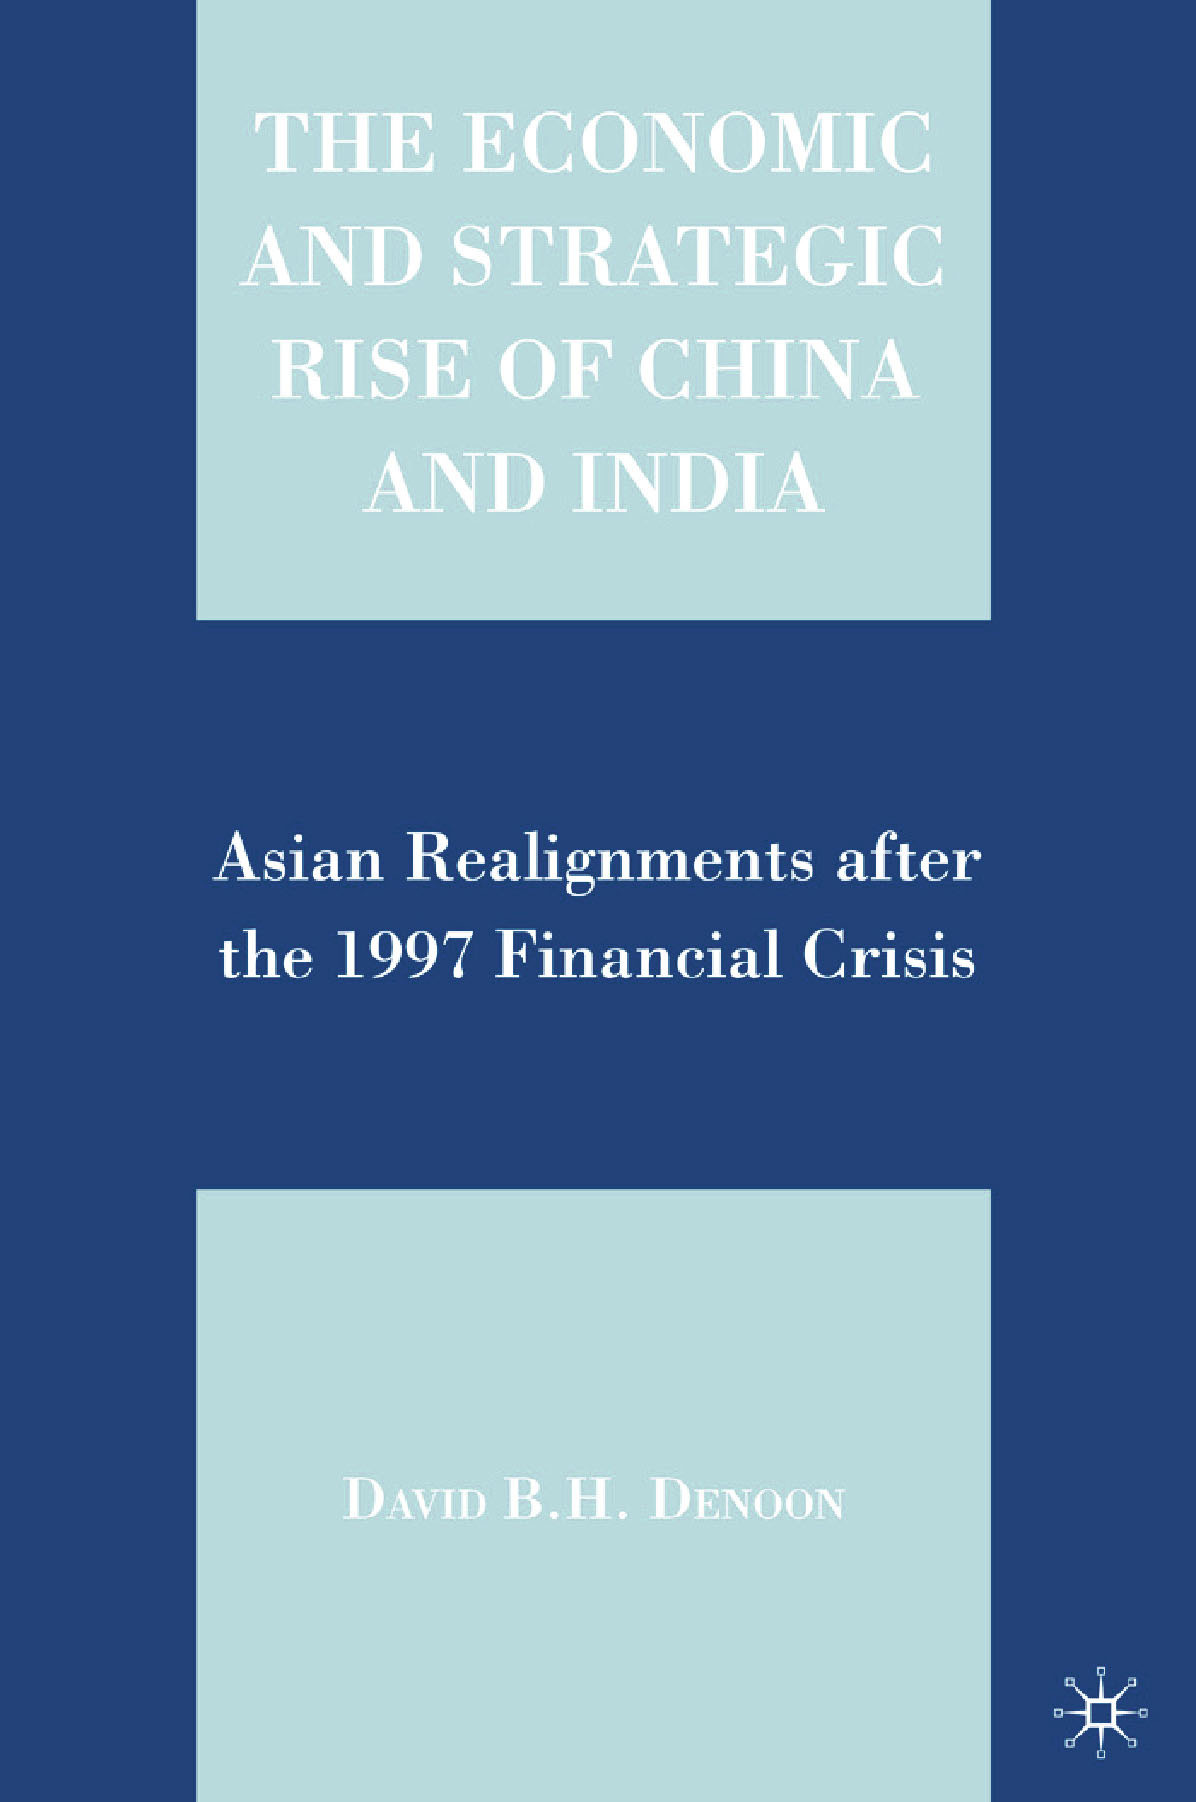 Denoon, David B. H. - The Economic and Strategic Rise of China and India, ebook